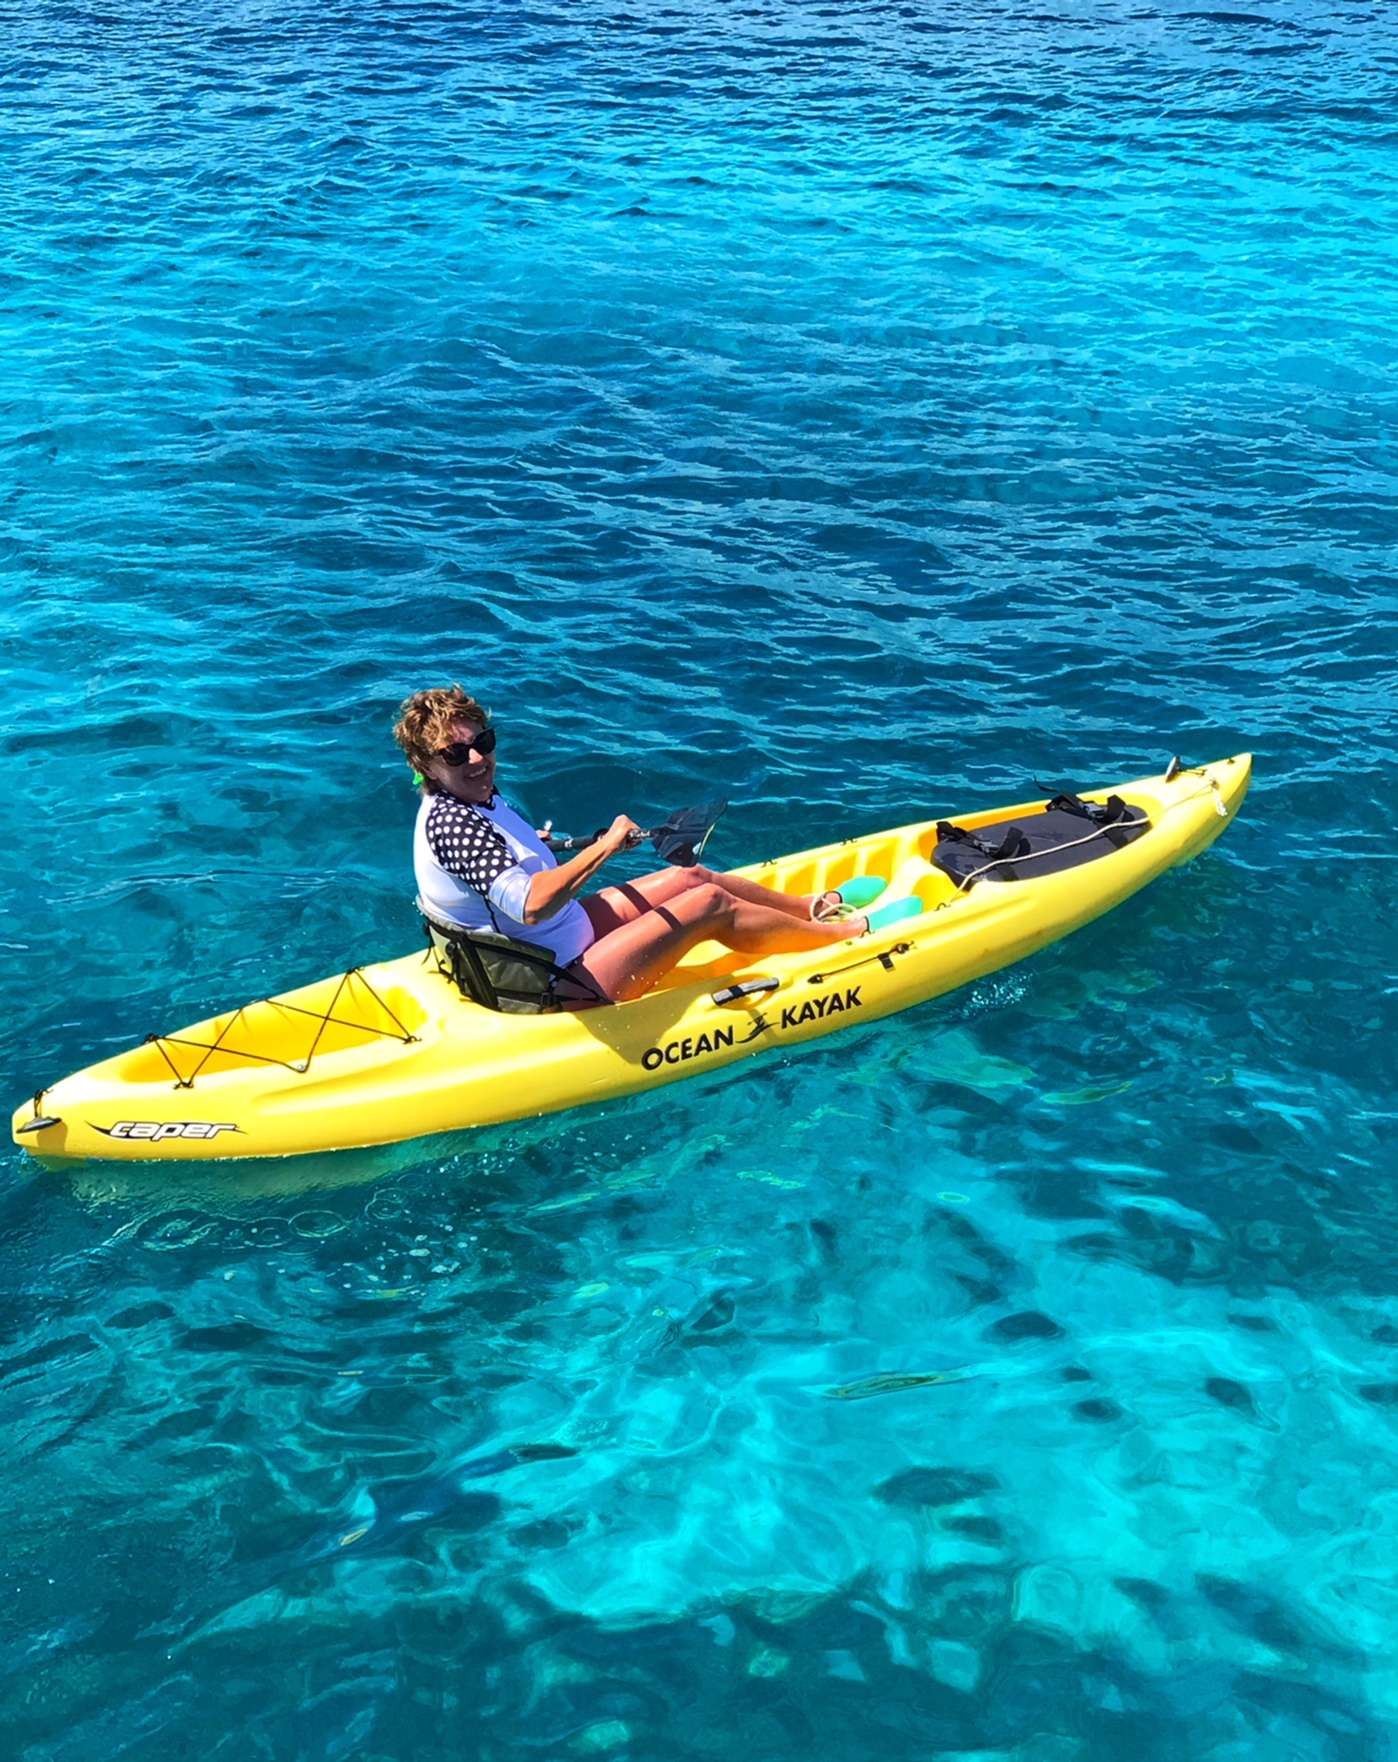 Kayaking through turquoise blue waters in search of sea turtles off St. John.  Does it get any better?